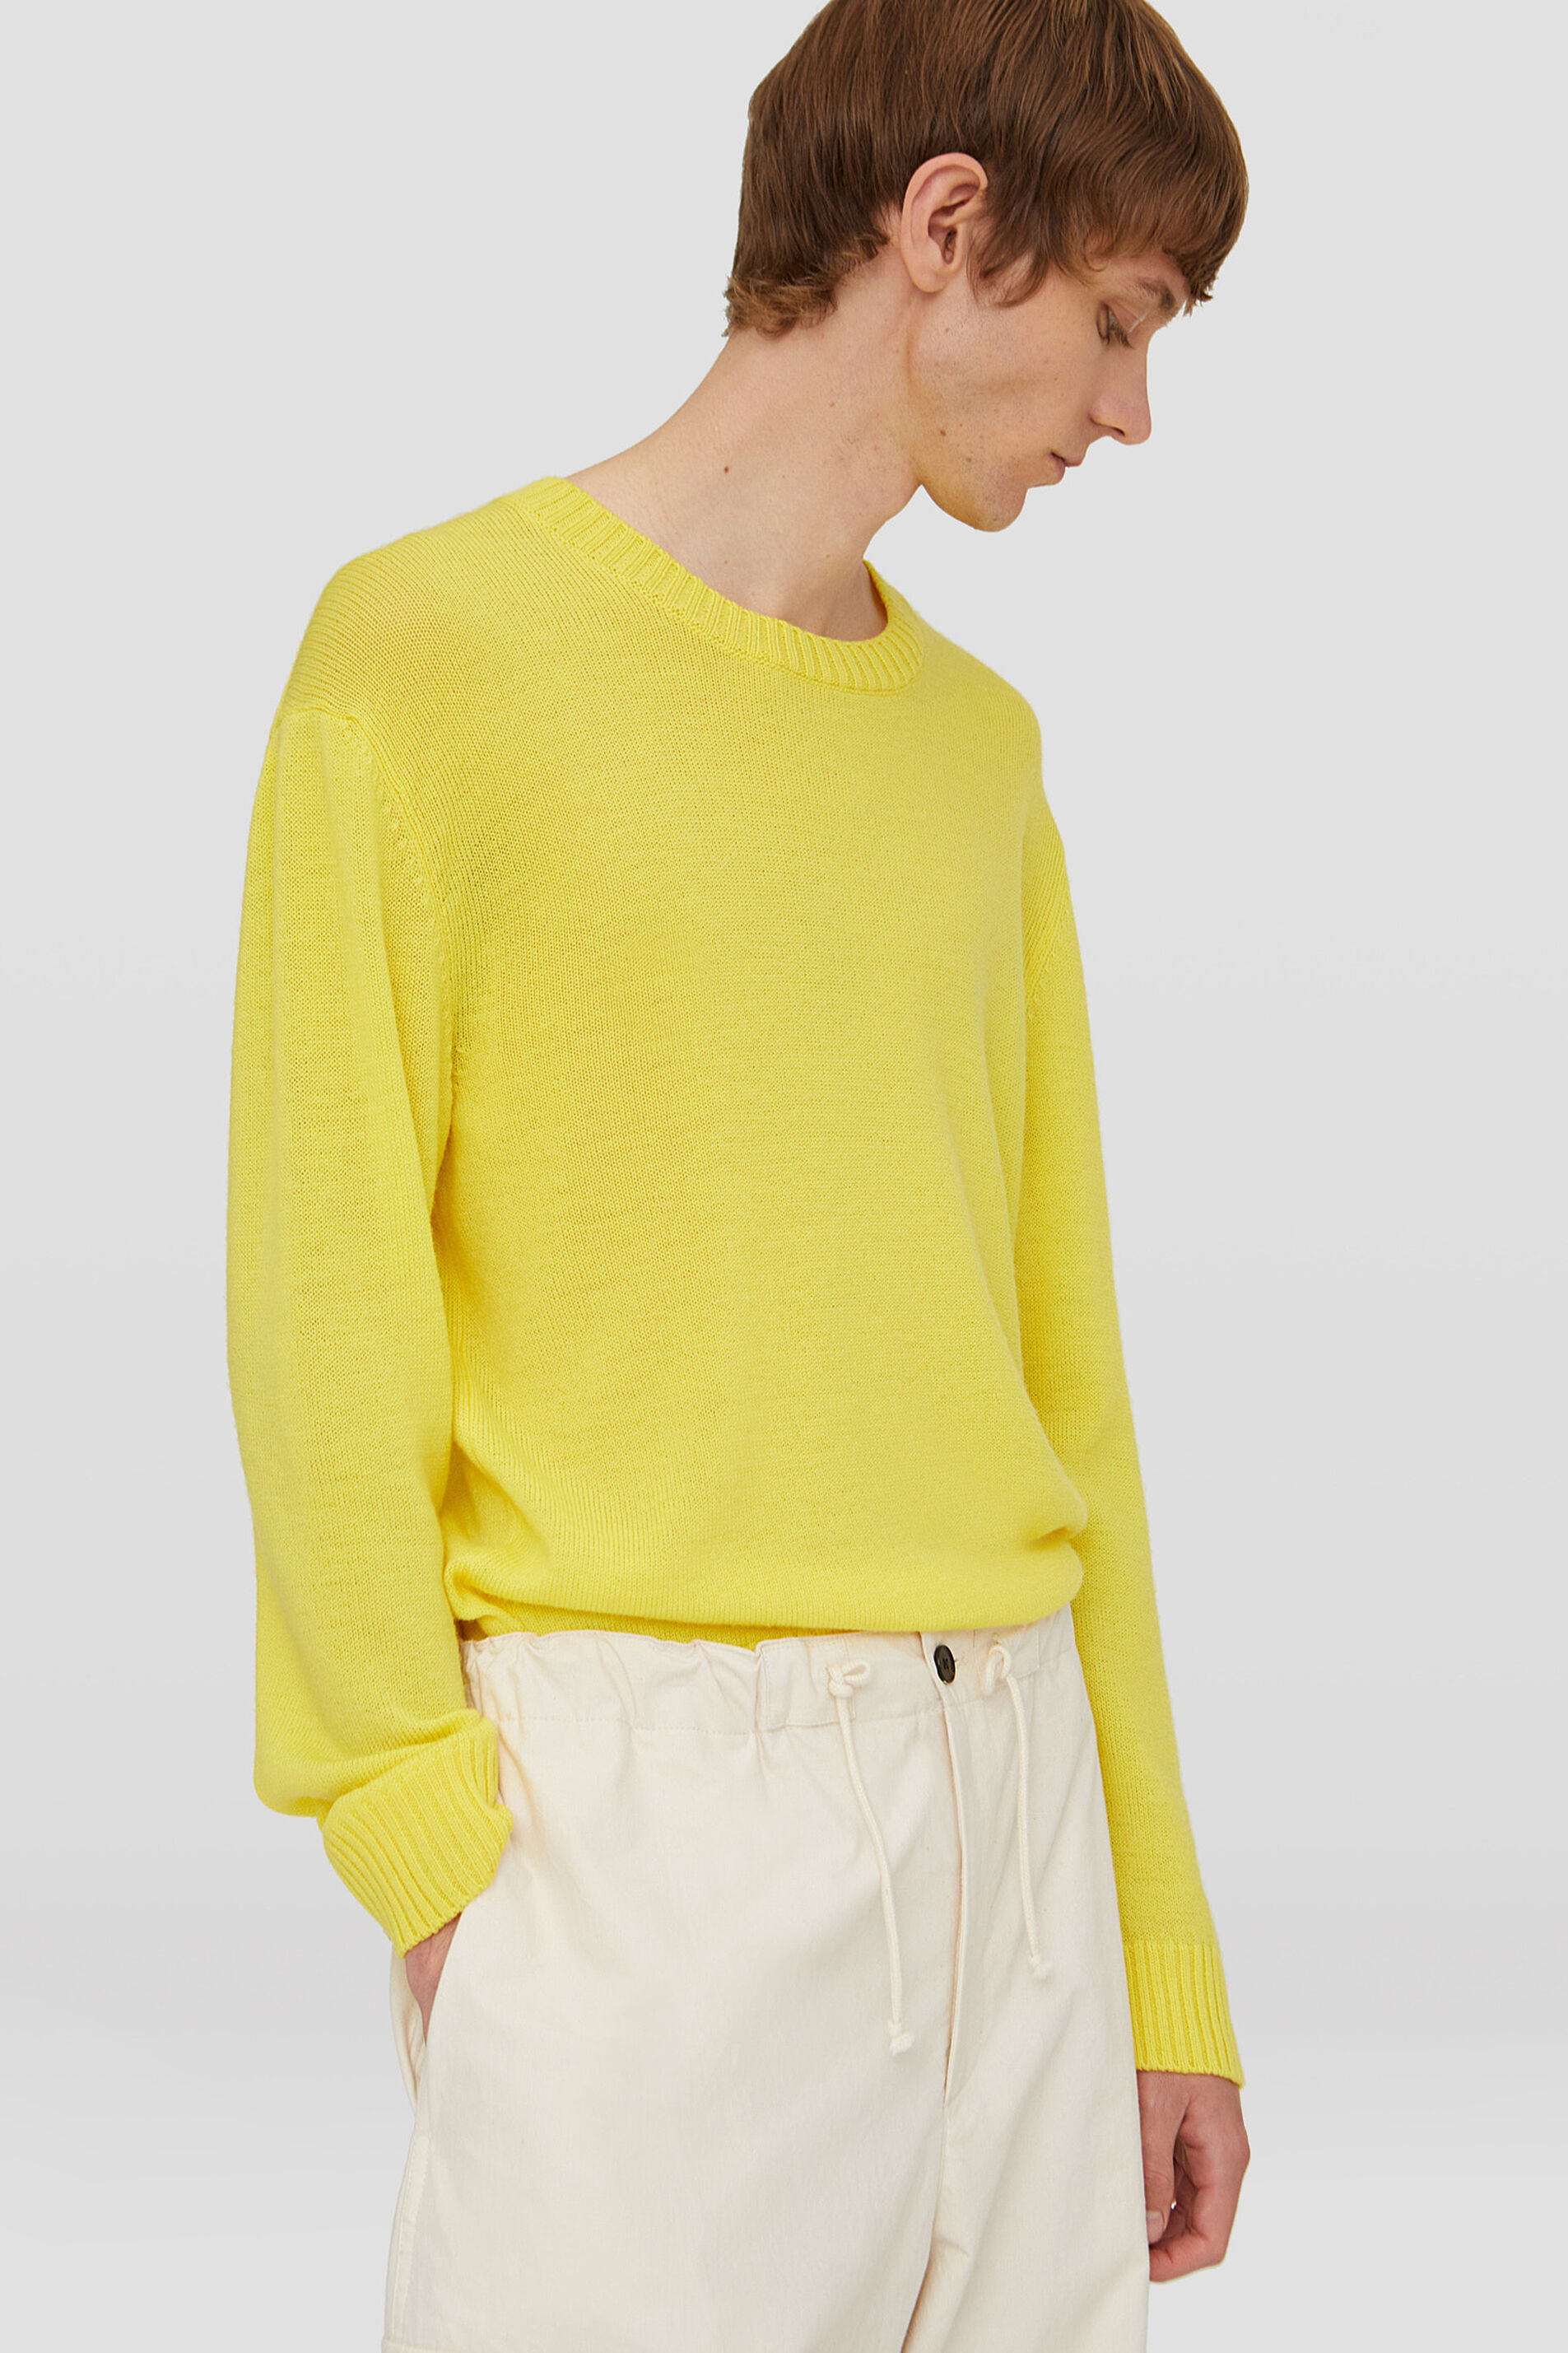 Sweater, yellow, large